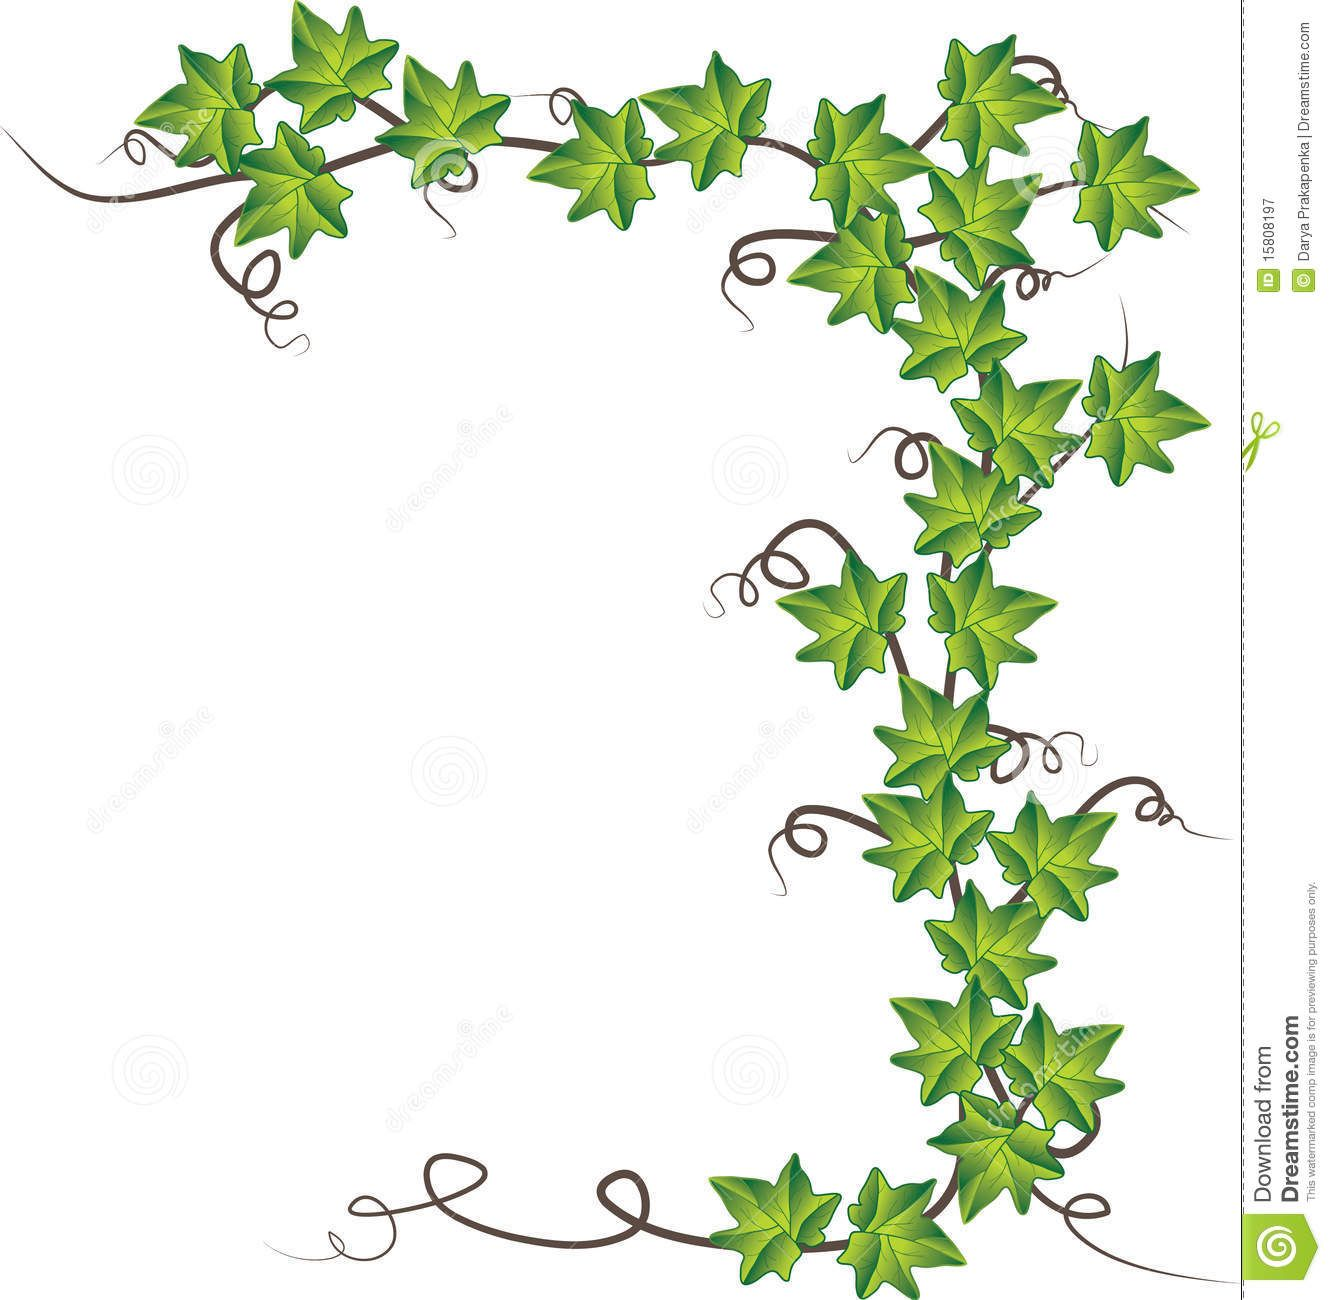 Ivy frame clipart graphic freeuse Pin by Priskal Wijaya on ELEGANT HOMES ✿✿ | Plant vector ... graphic freeuse